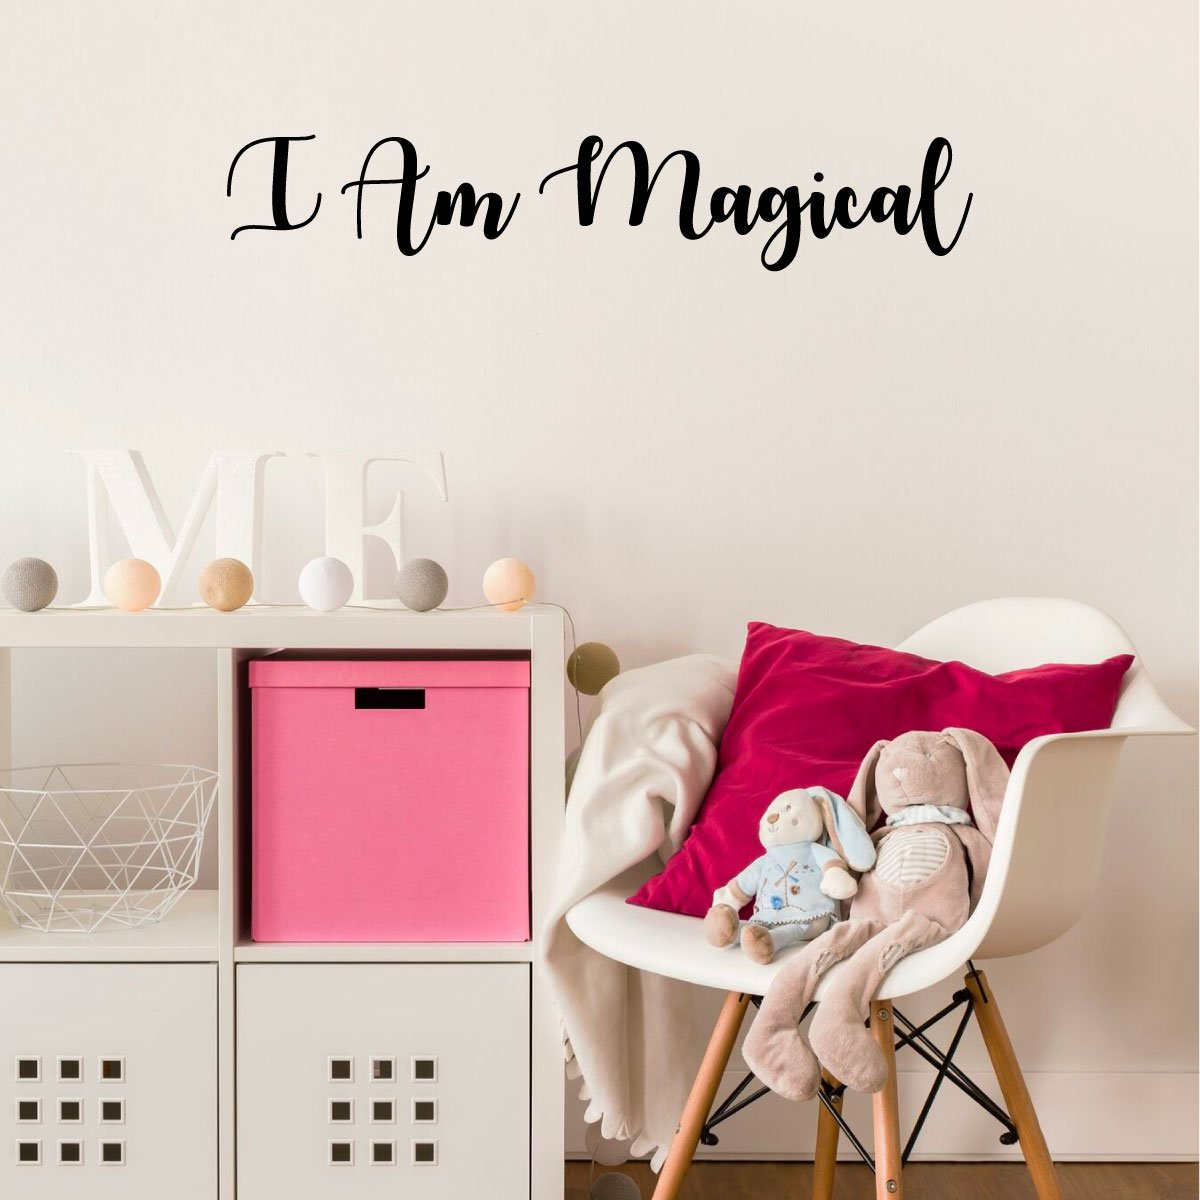 I Am Magical Wall Decal for Girls Bedroom Vinyl Decor